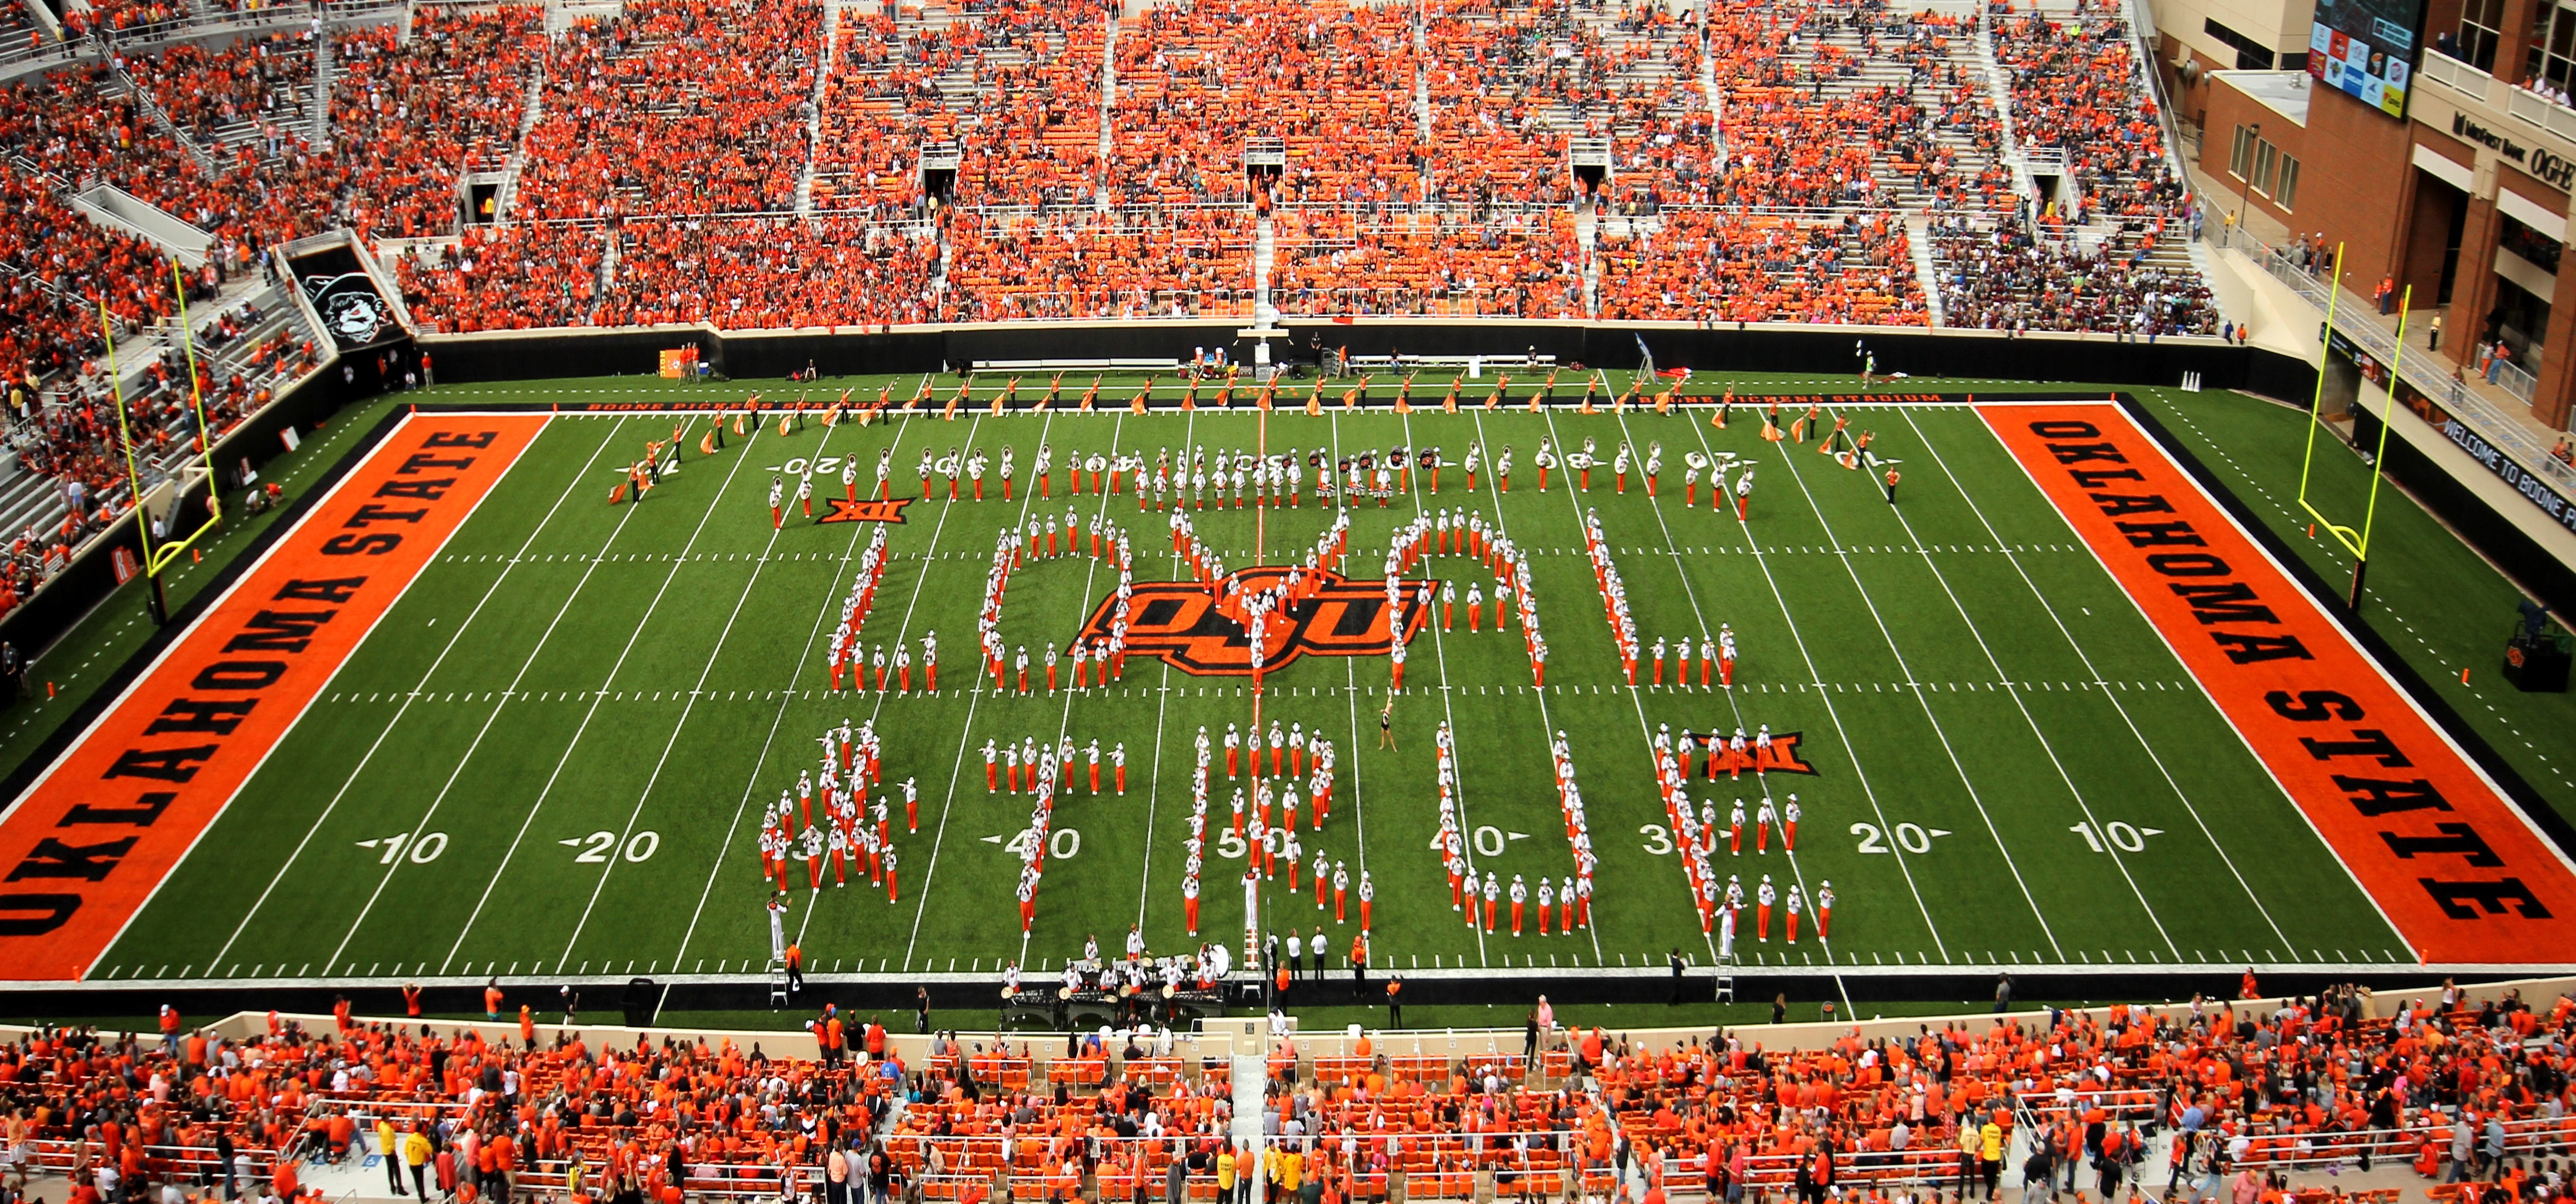 stillwater oklahoma state university campus with The Cowboy Marching Band 2 on Multiple People Injured Oklahoma State Parade N450876 moreover The Cowboy Marching Band 2 moreover 21738267889 moreover Watch Video  bining Stem Experiences University Life as well Annual Report 2014.